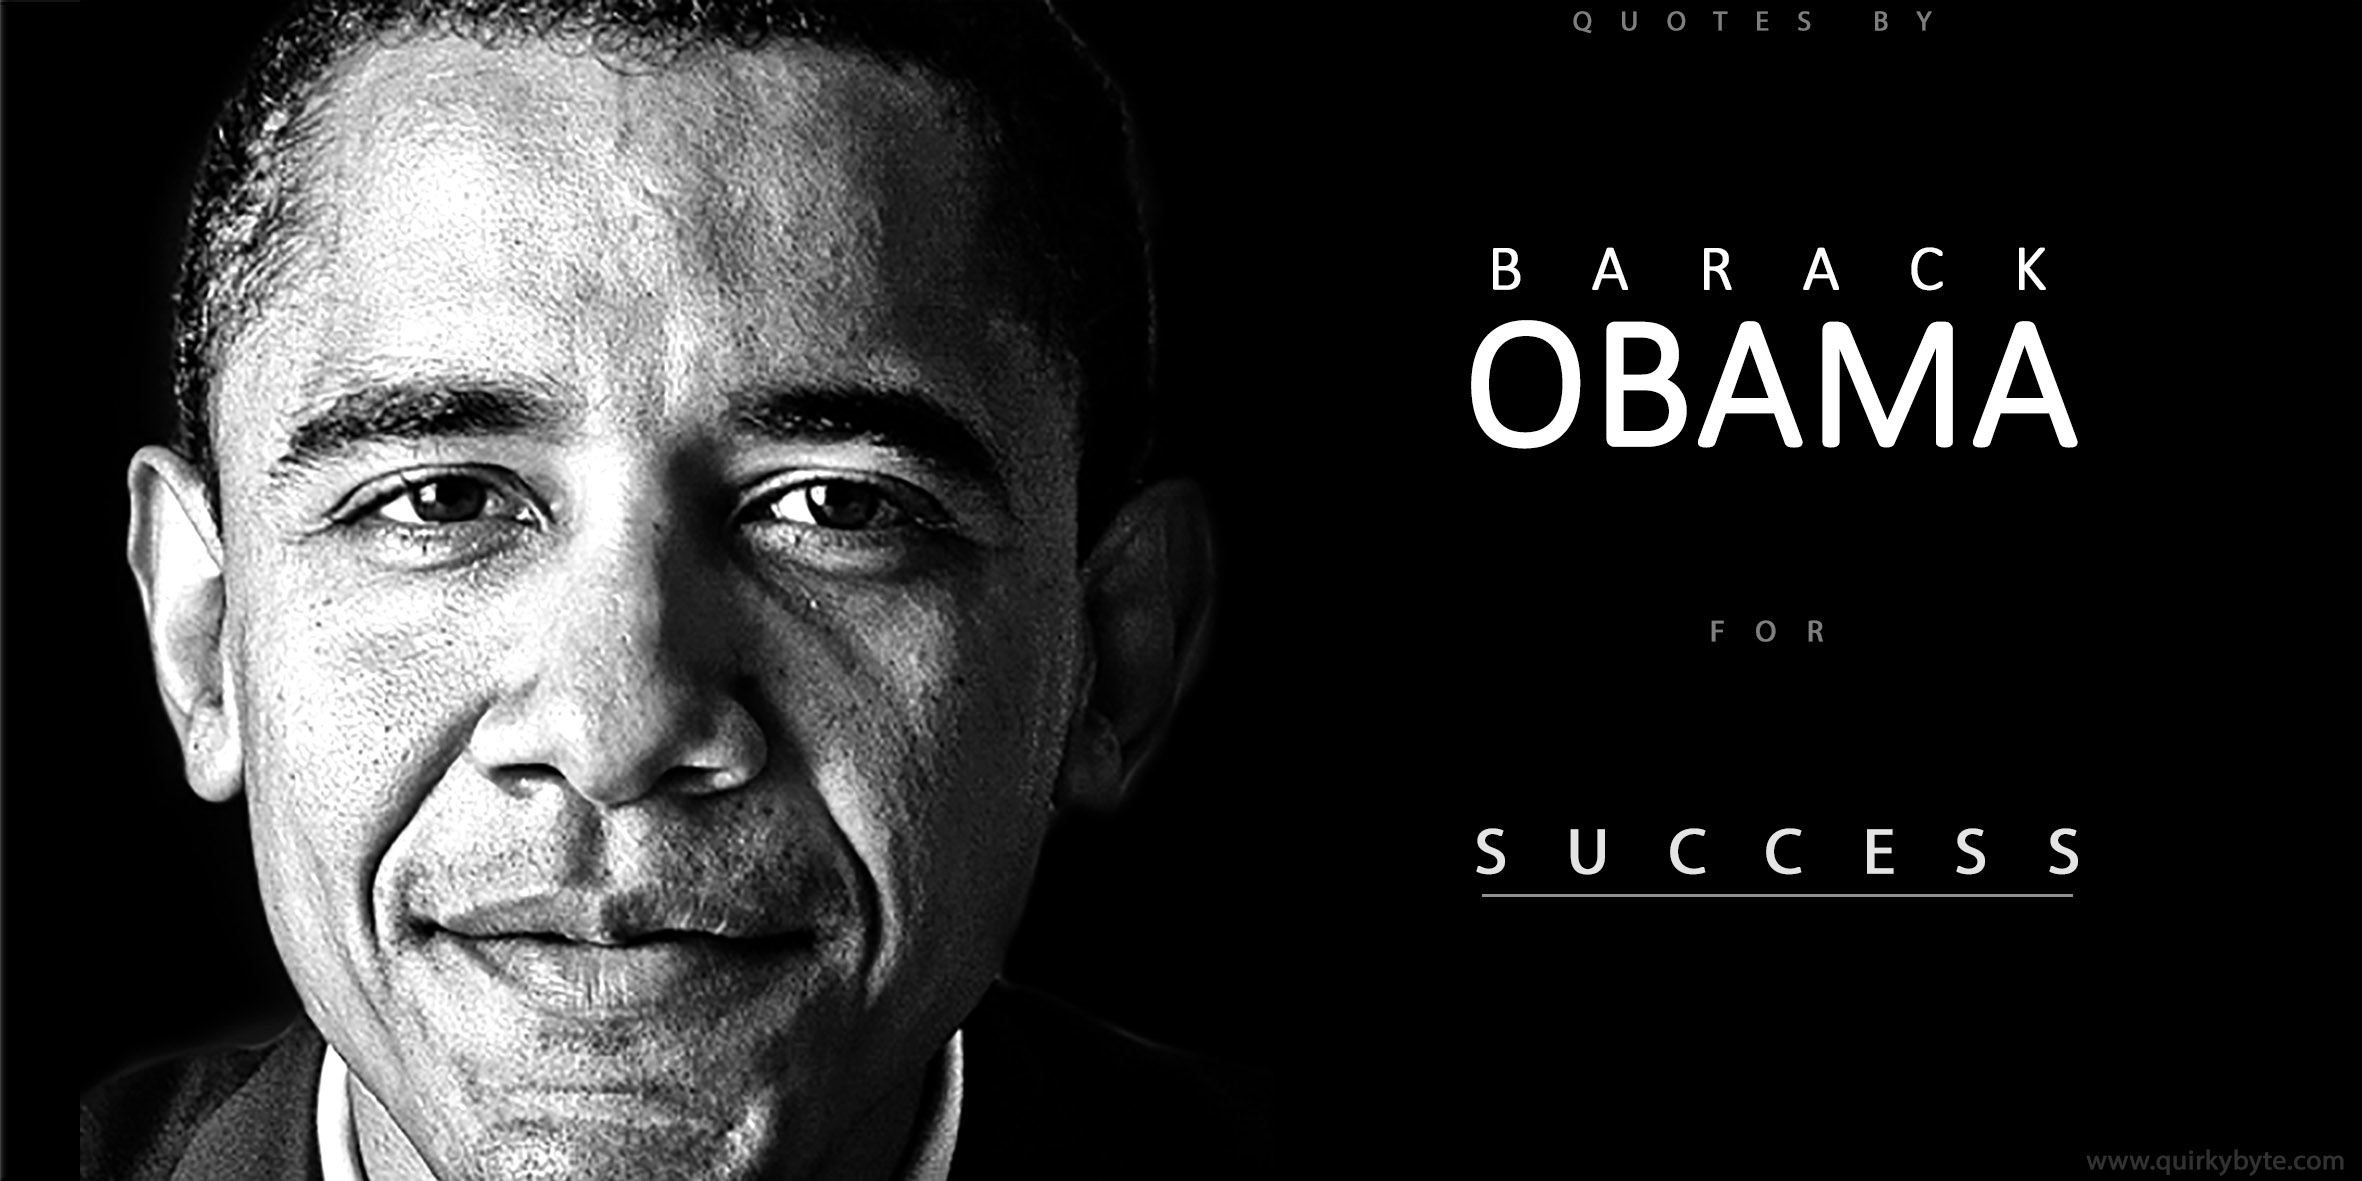 barack obamas success essay This essay will explore the history of obama's ascend to presidency, his success and failures, and an overall evaluation of obama's first year in office the rise of barack obama obama was born on august 4, 1961 in honolulu hawaii to parents ann dunham and barack obama sr.